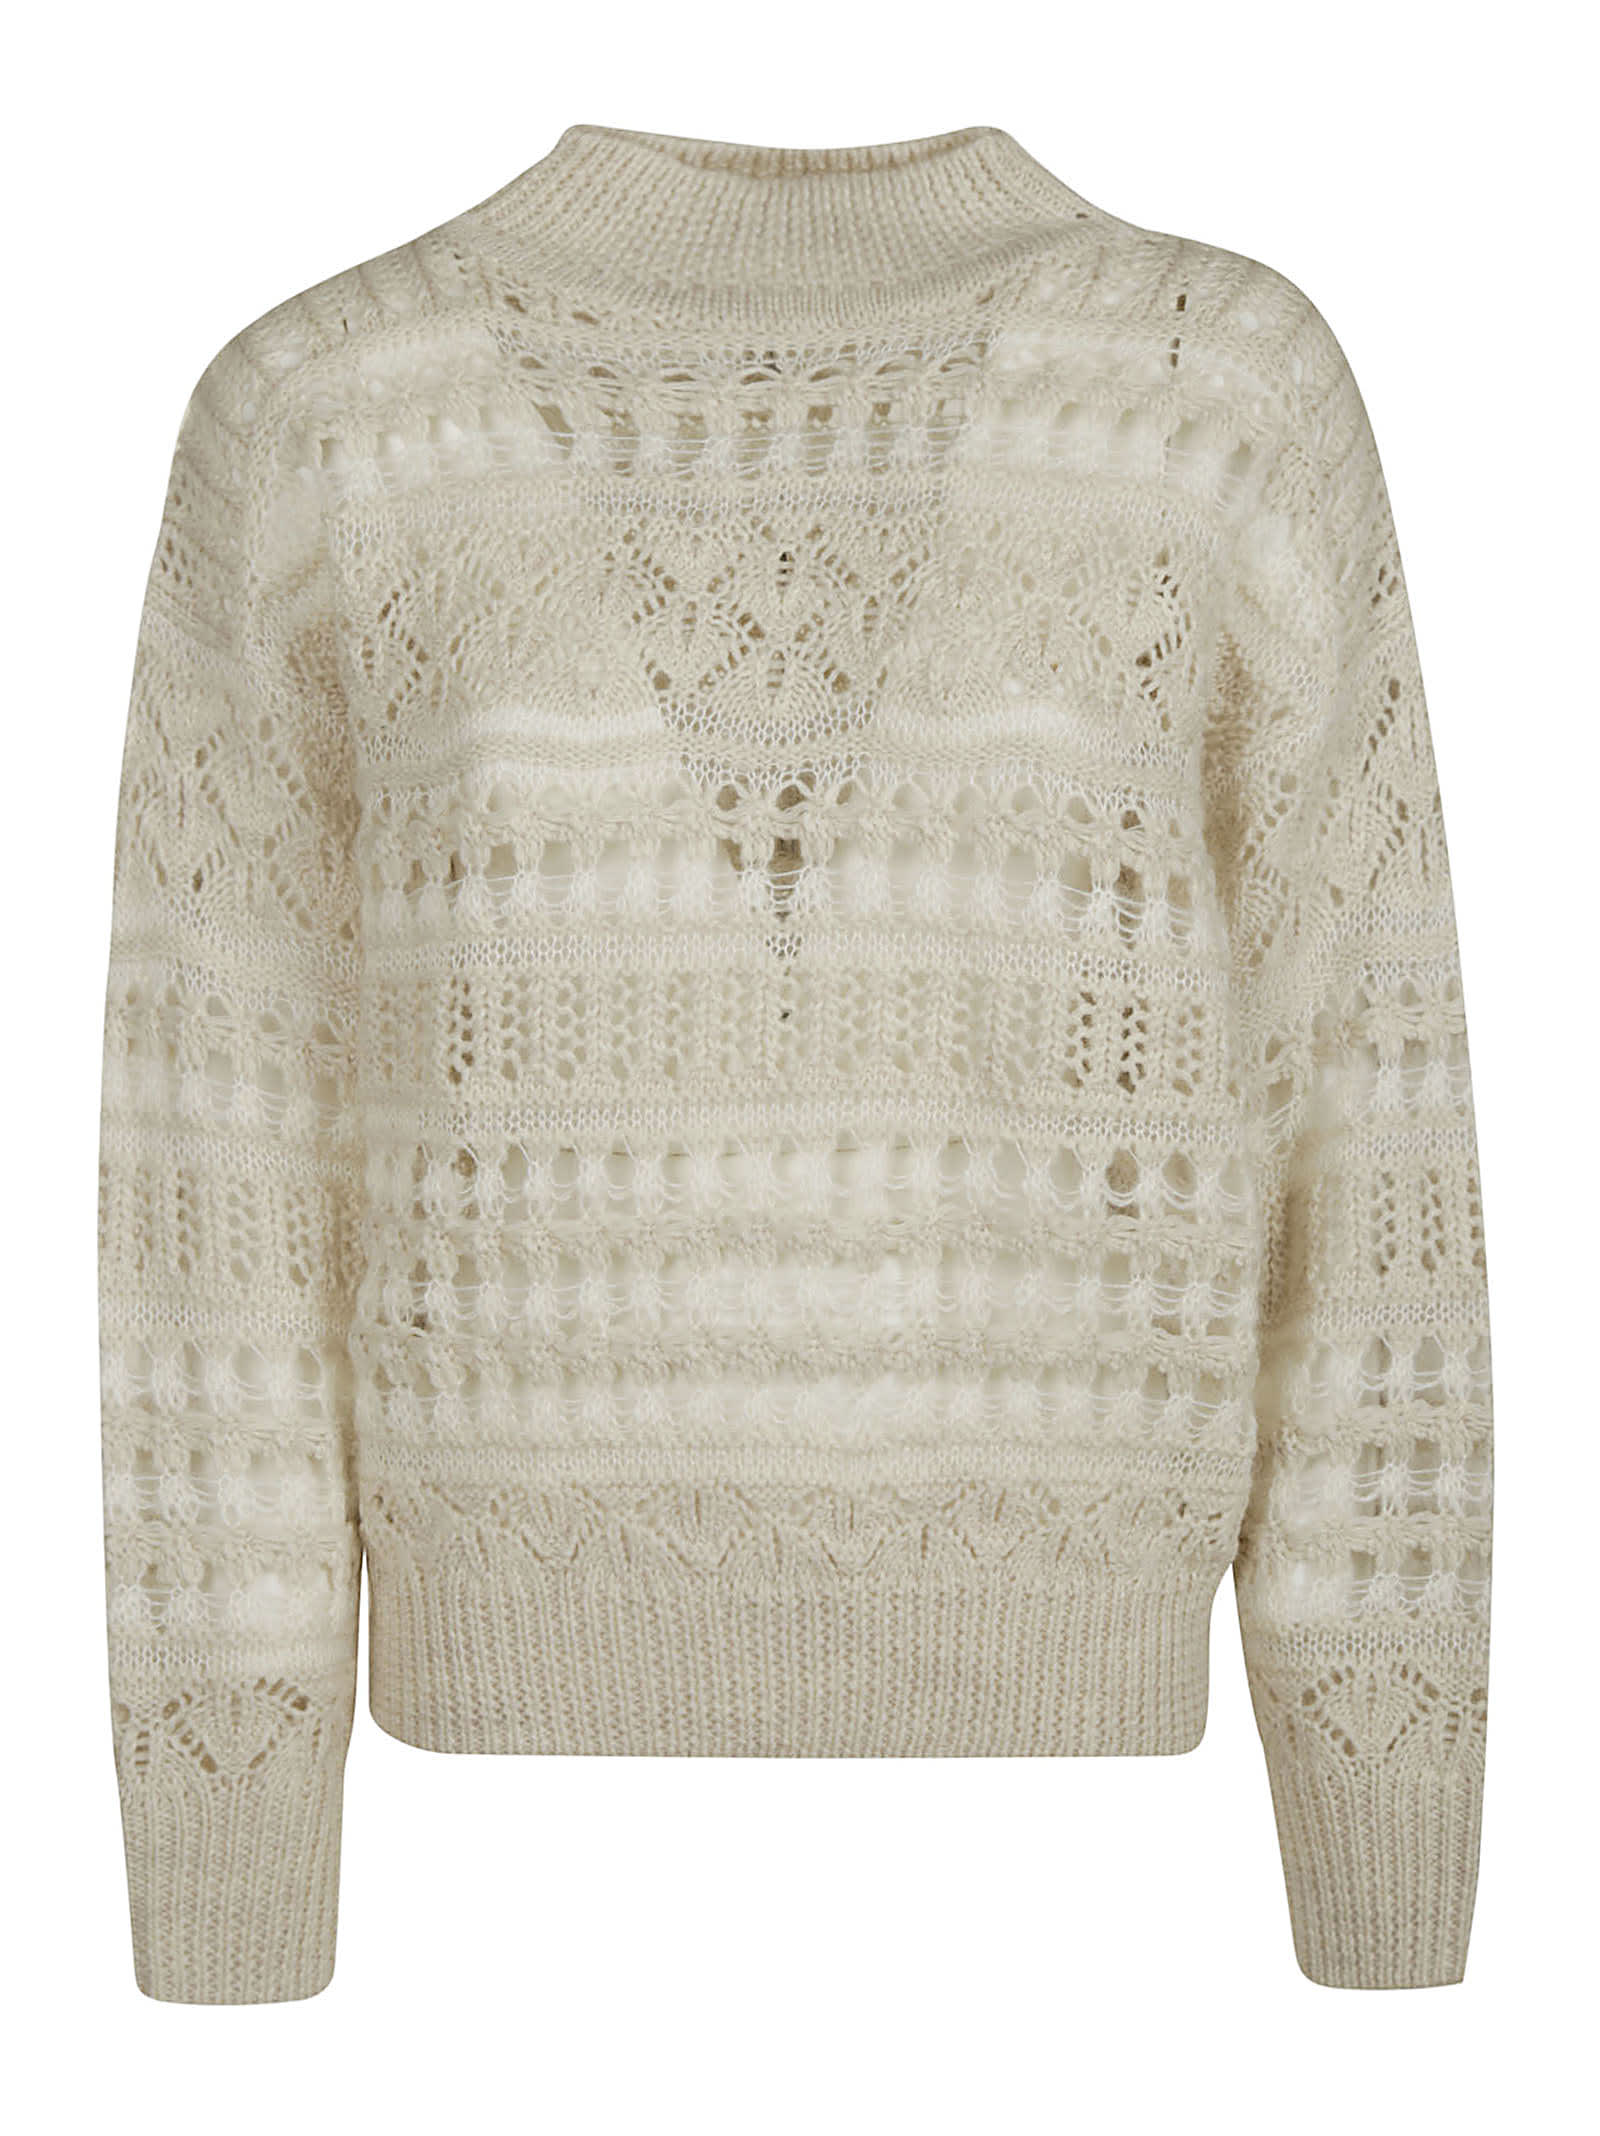 Isabel Marant Pernille Sweater